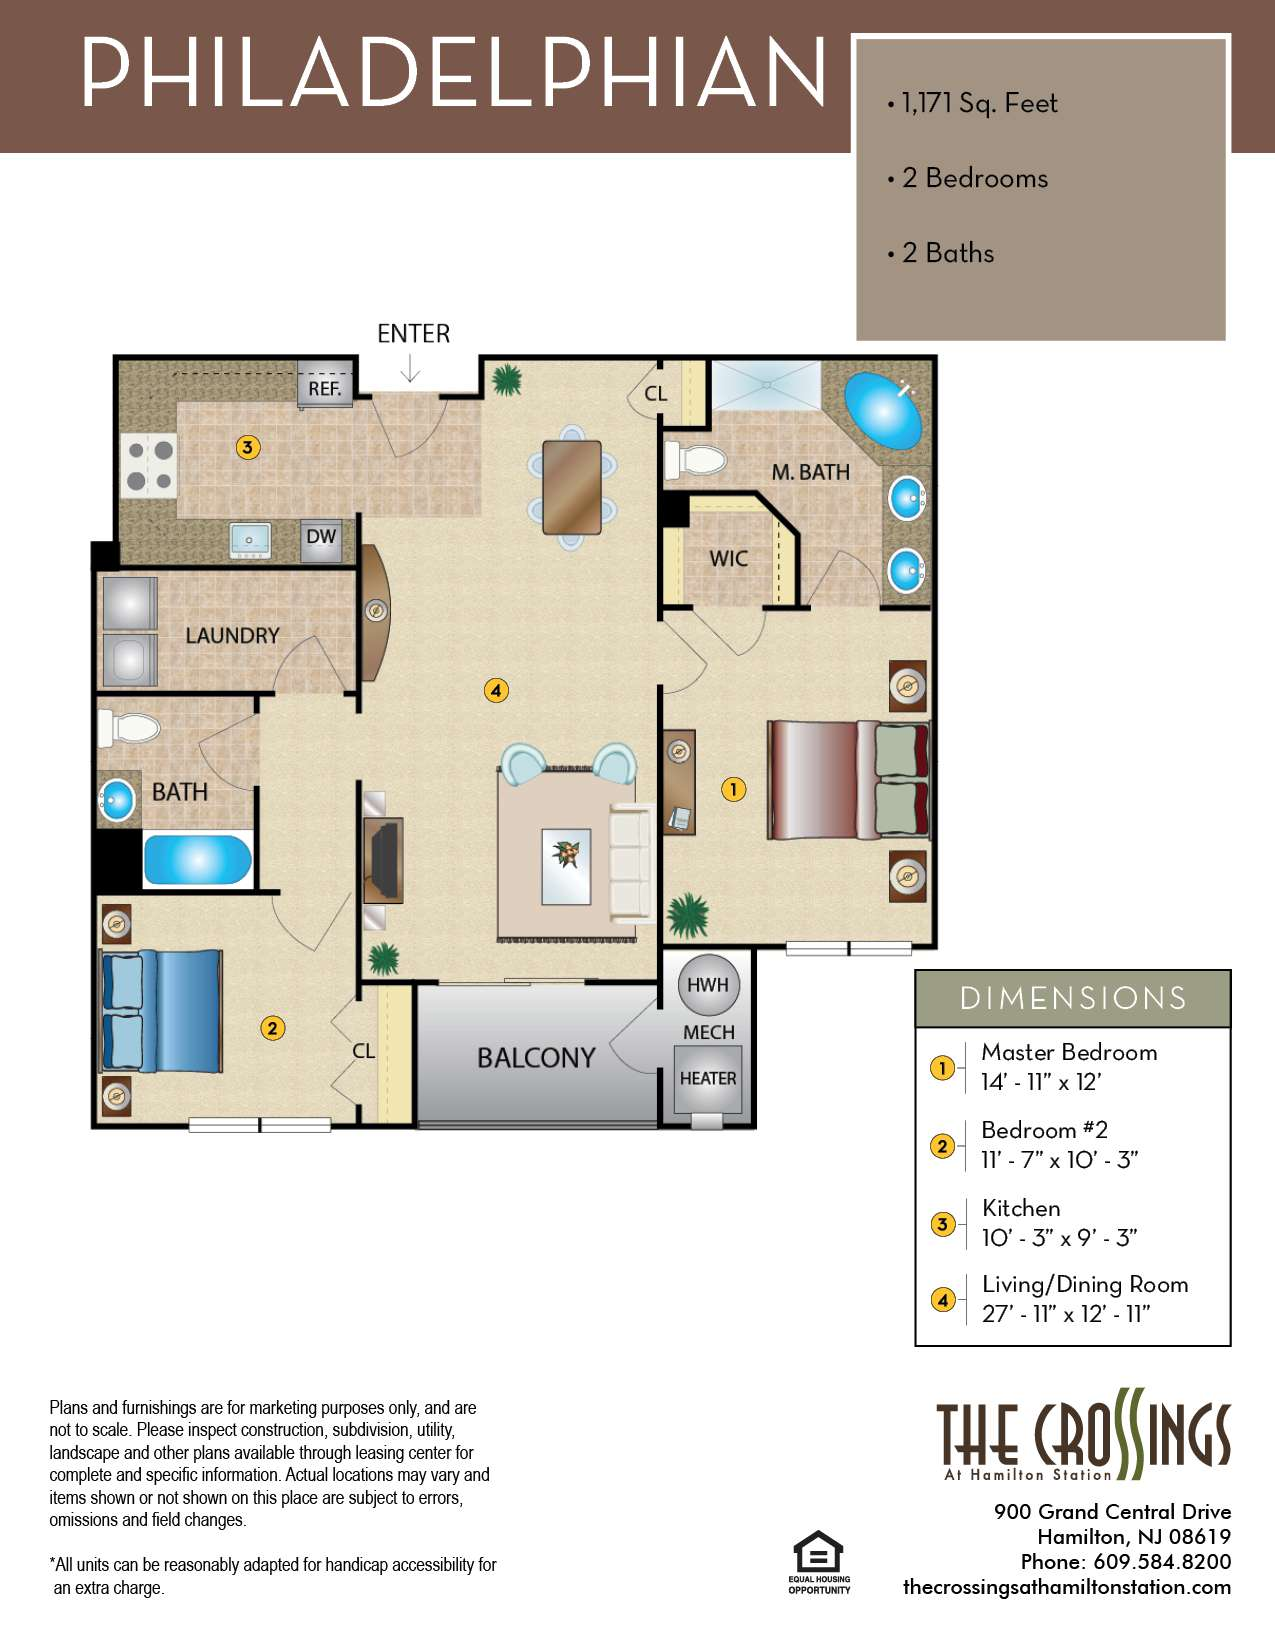 The Crossings at Hamilton Station Apartment Floor Plan The Philadelphian